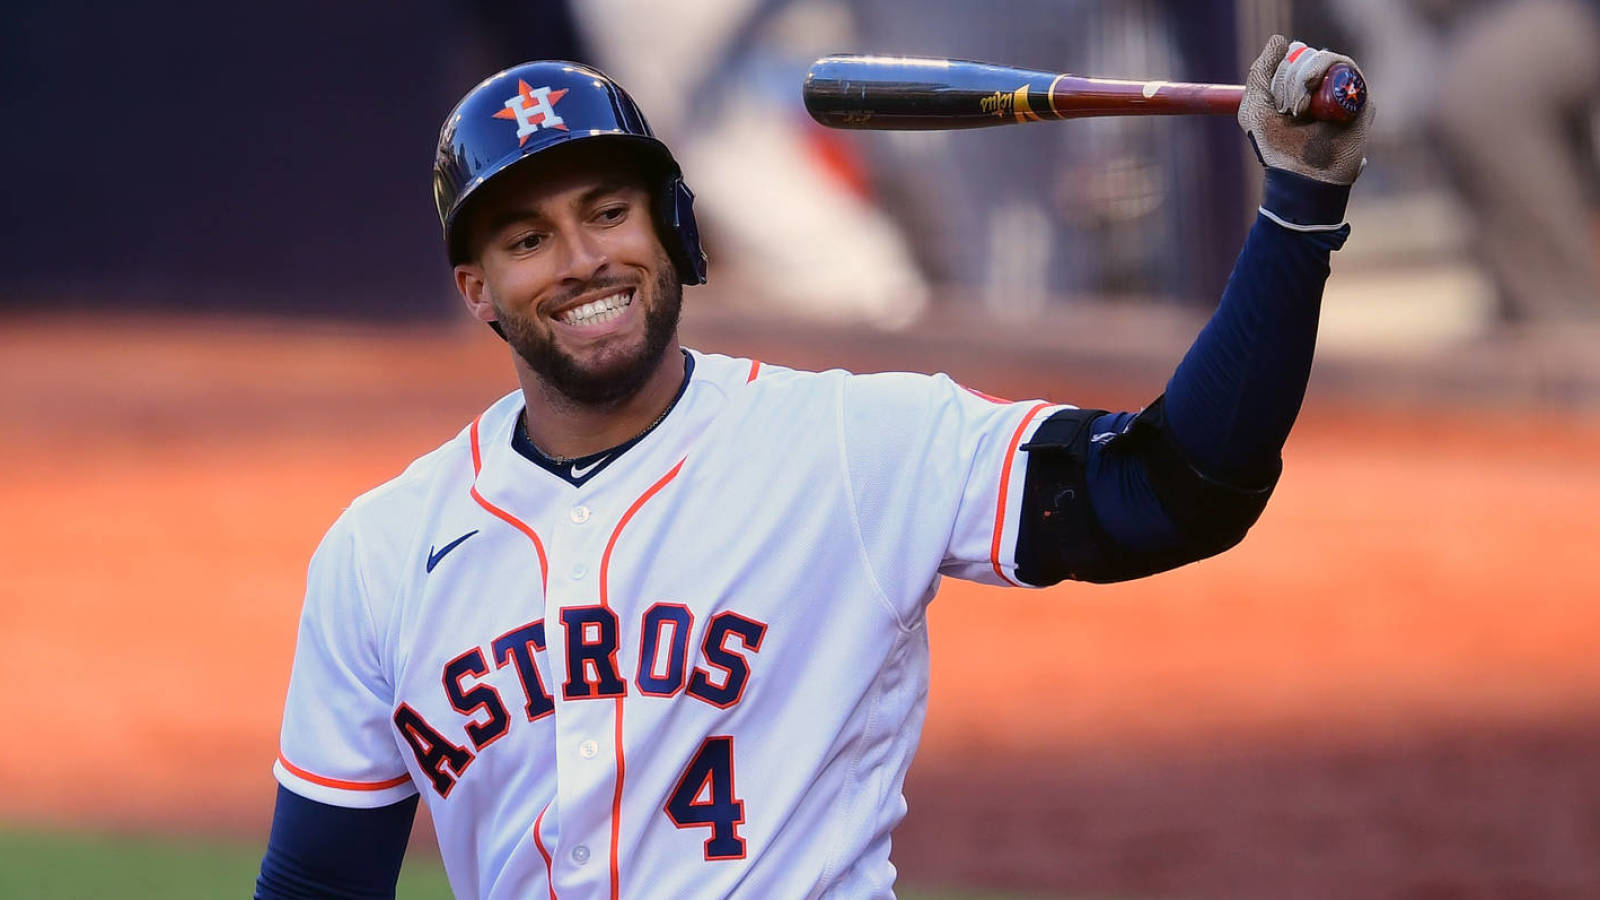 Report: Mets offered George Springer six-year deal worth more than $120M